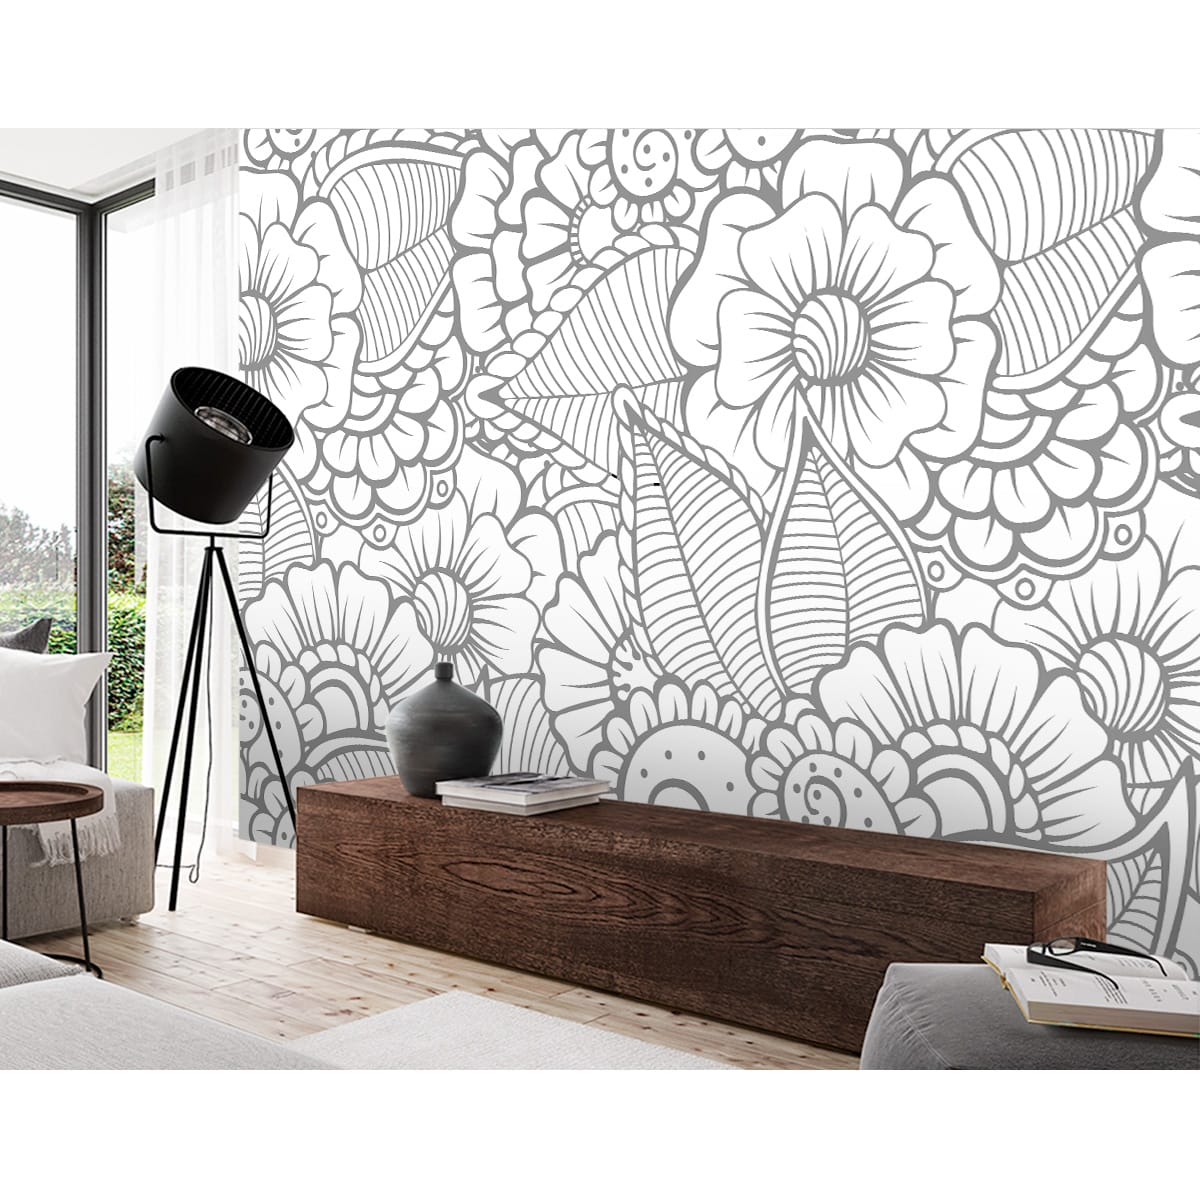 Painel Adesivo - FLORAL CINZA